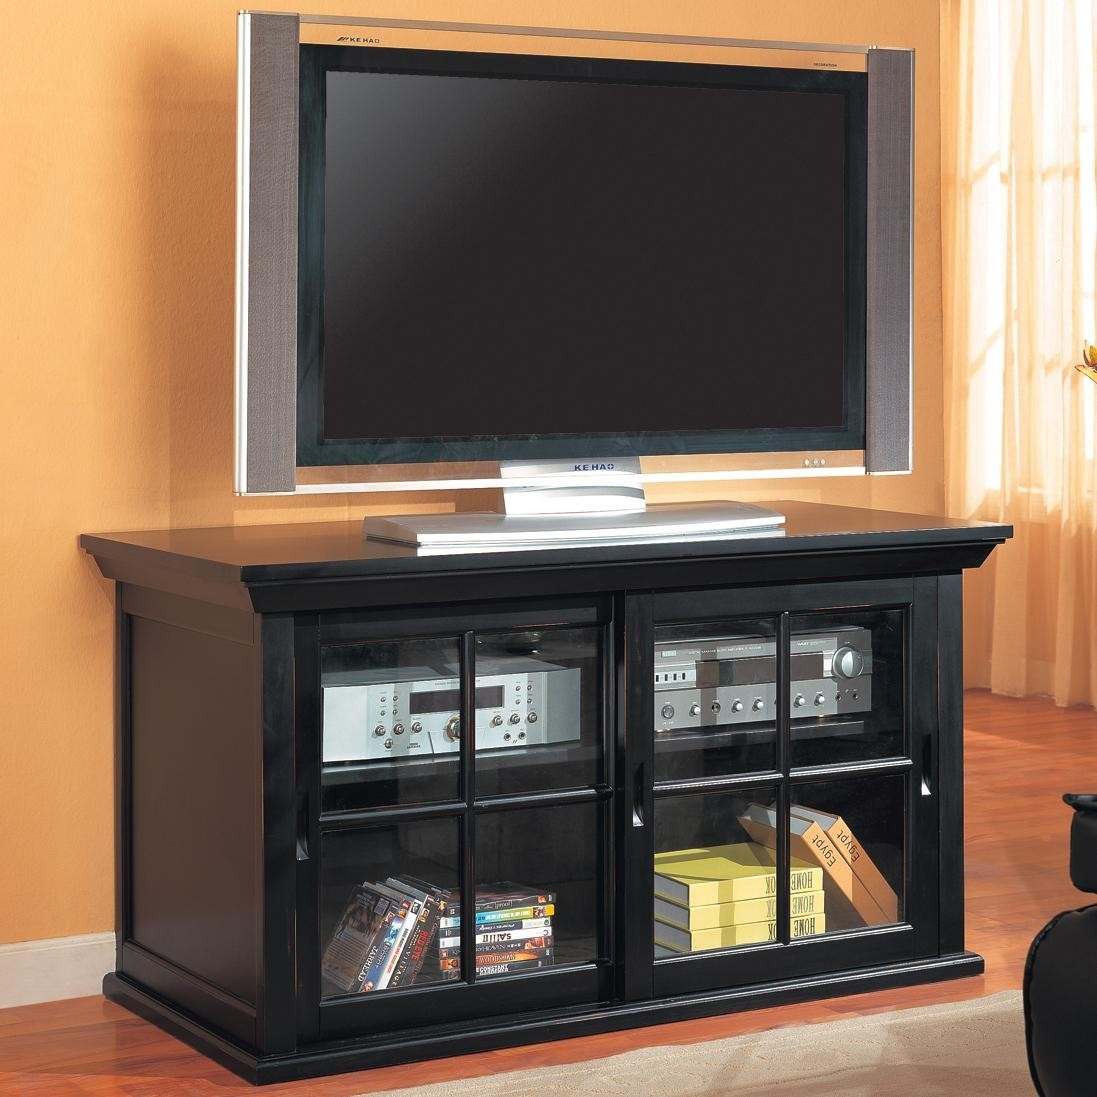 Tv Stands With Sliding Glass Doorstv stands transitional media console with sliding glass doors